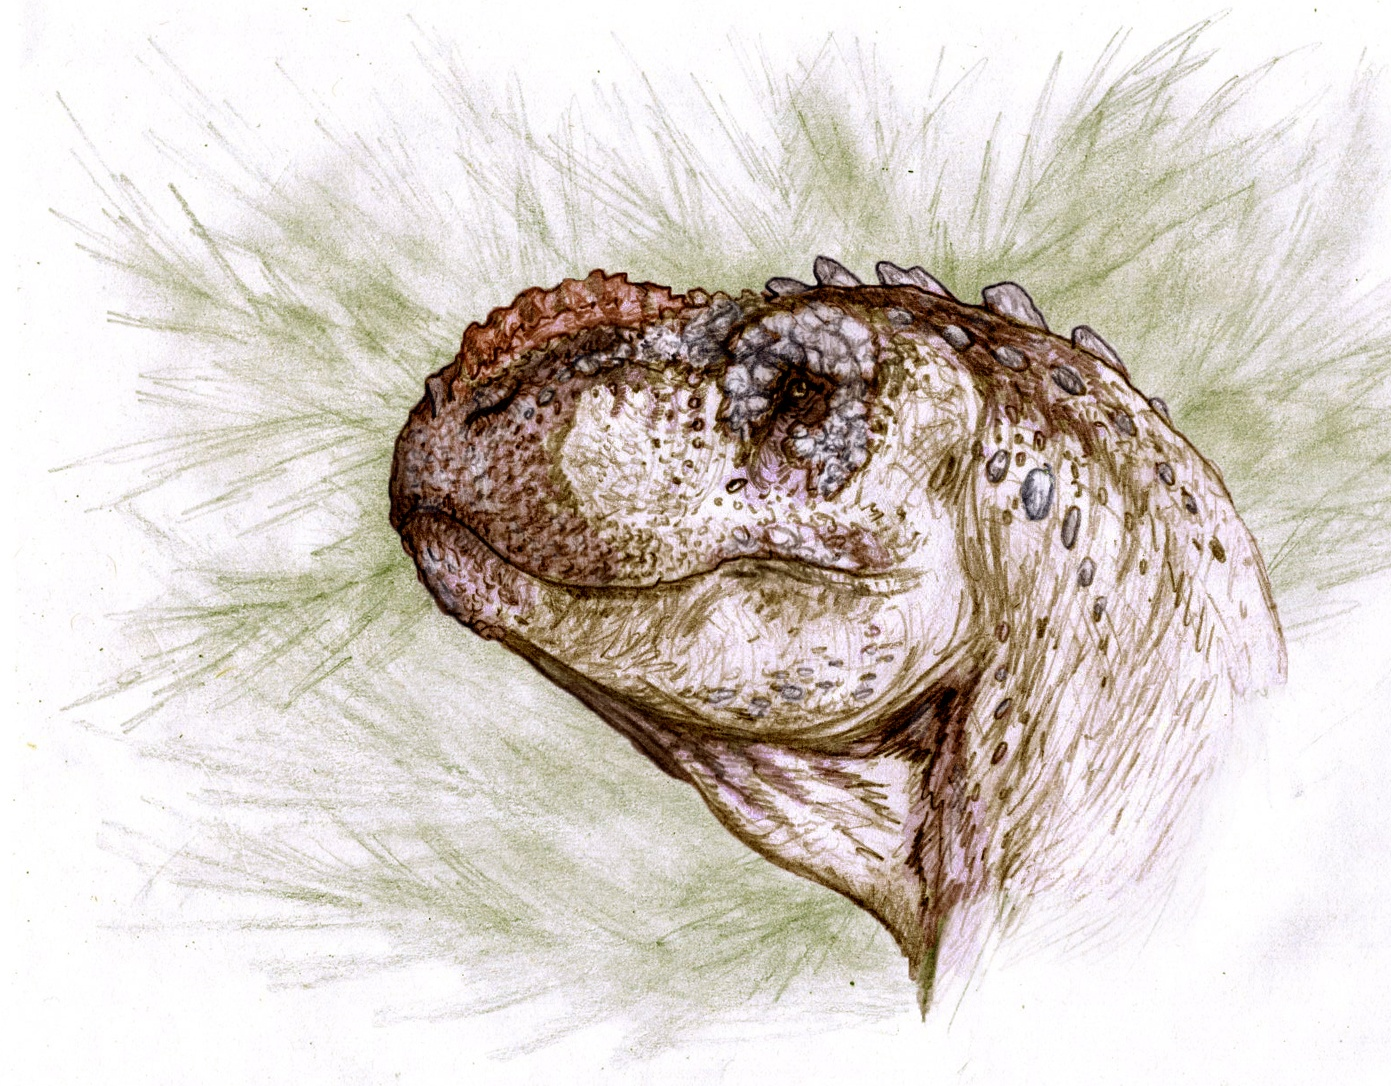 Distant T-rex relative named 'thunder reptile' discovered in Argentina